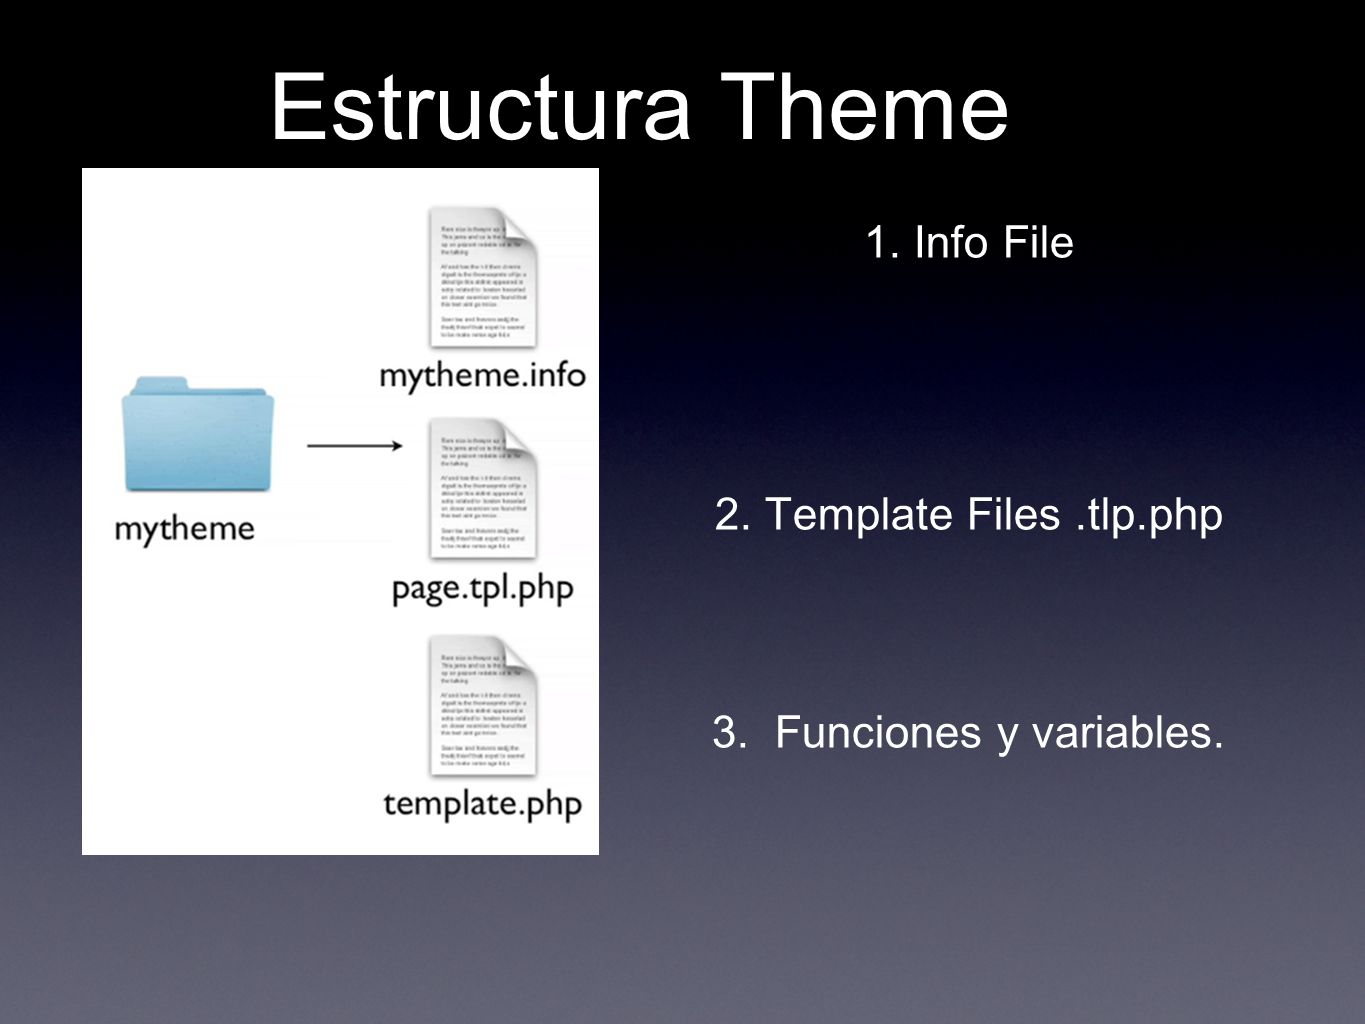 1. Info File 2. Template Files.tlp.php 3. Funciones y variables.